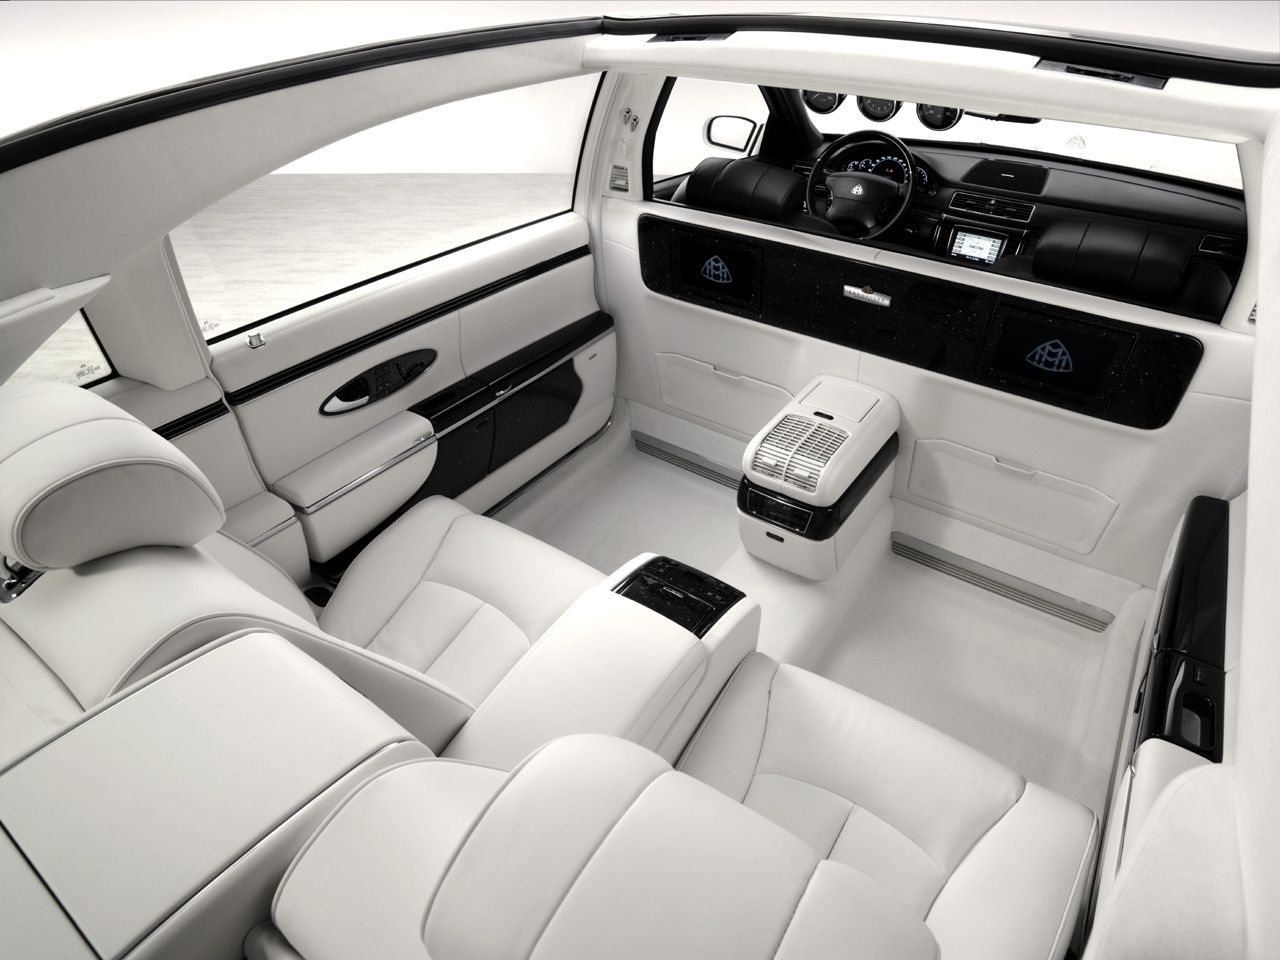 Charming Maybach Luxury Car Interior Do You Like This Cool Car? Get A Lot More  Dazzling